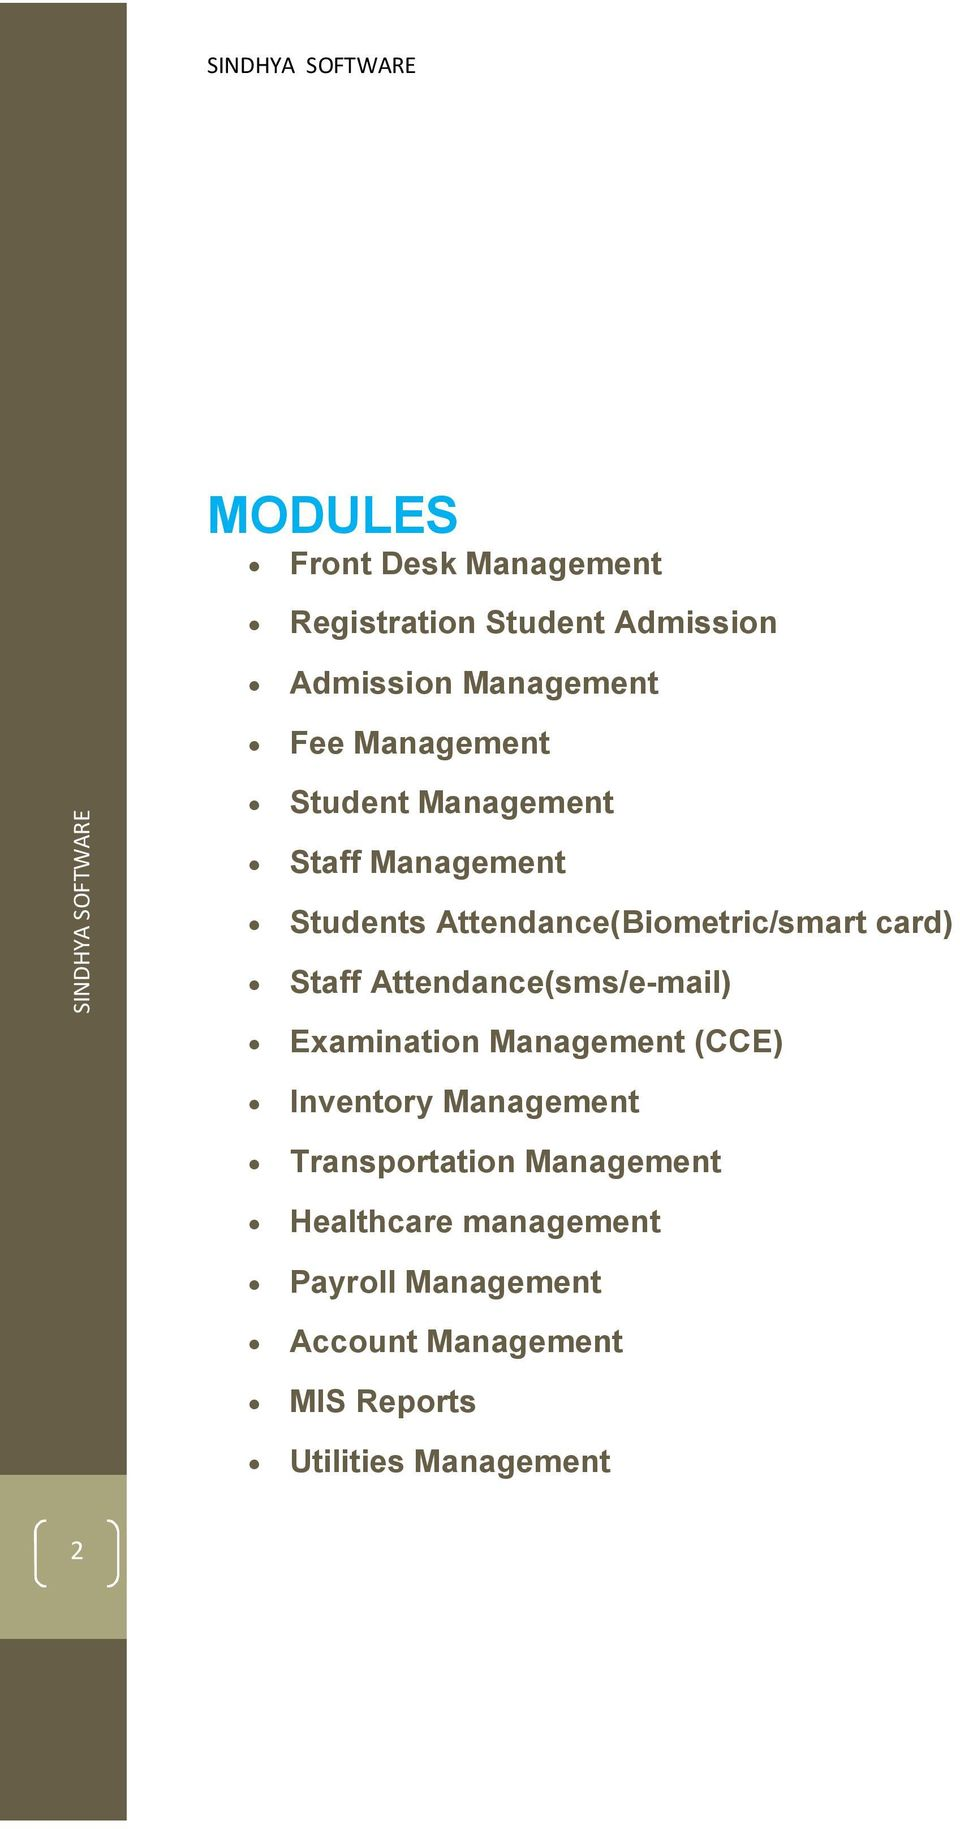 Staff Attendance(sms/e-mail) Examination Management (CCE) Inventory Management Transportation